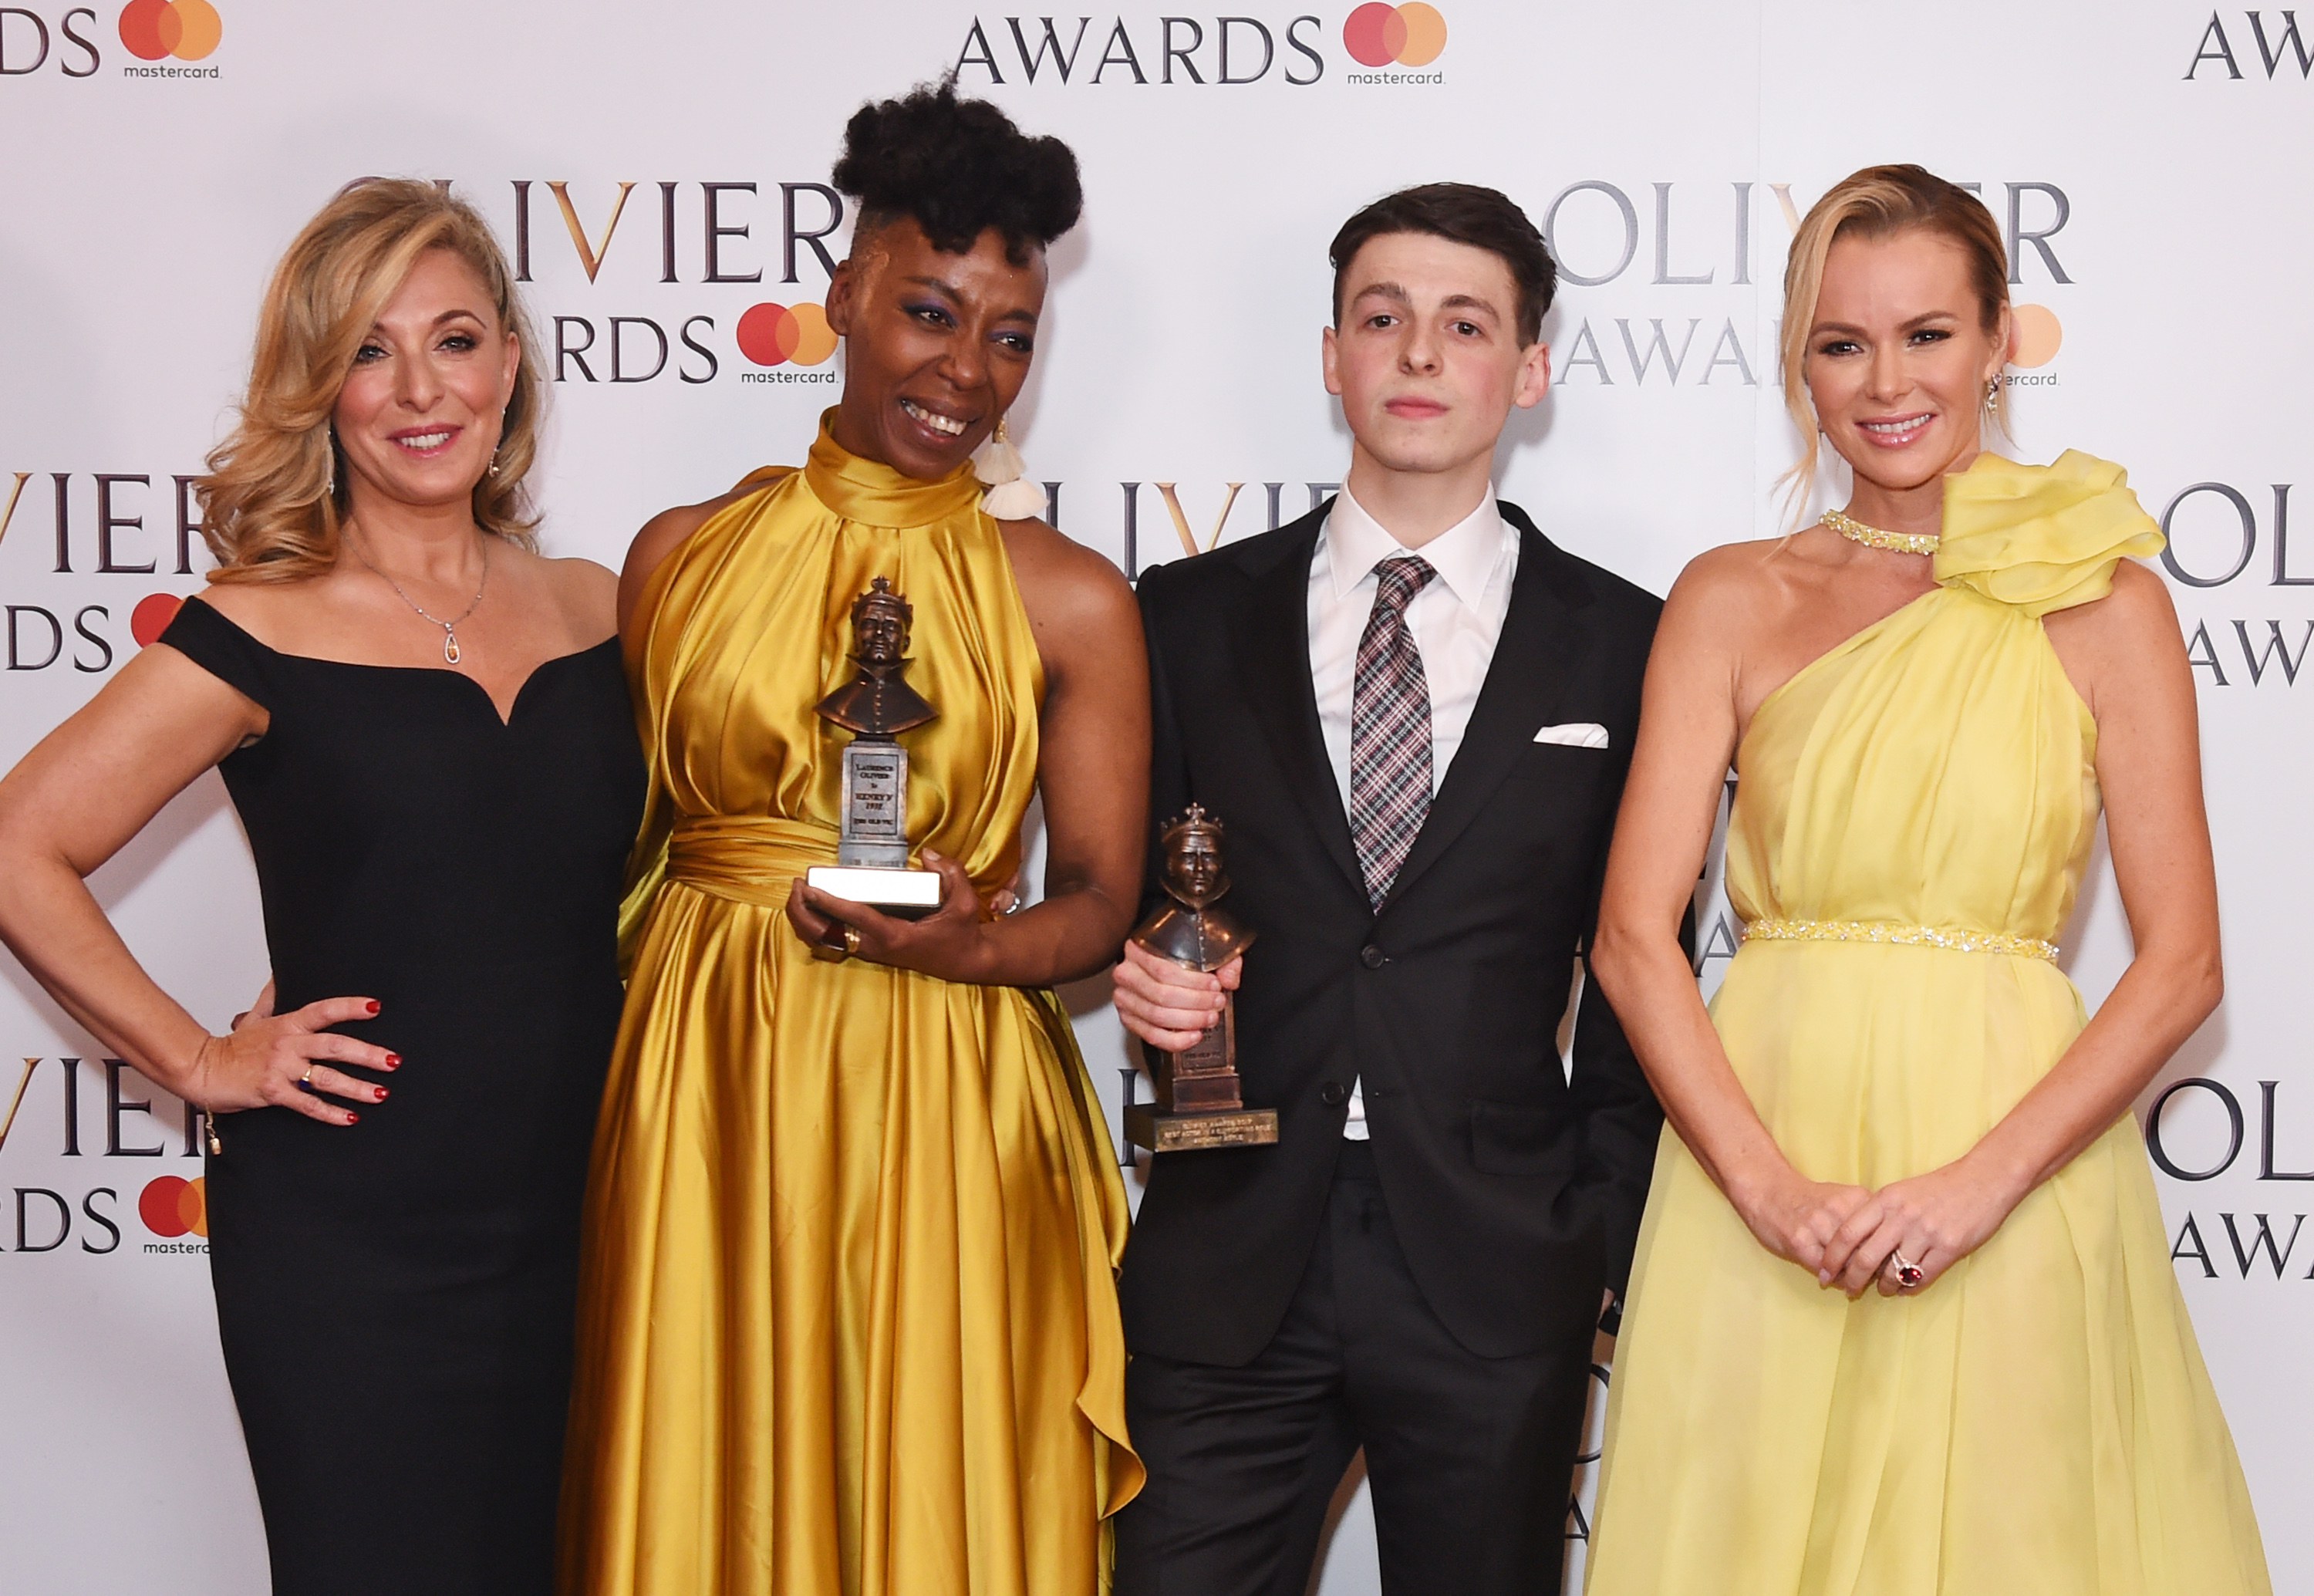 (L to R) Tracy-Ann Oberman, Noma Dumezweni, winner of the Best Actress in a Supporting Role for  Harry Potter And The Cursed Child , Anthony Boyle, winner of the Best Actor in a Supporting Role award for  Harry Potter And The Cursed Child , and Amanda Holden pose in the winners room at The Olivier Awards 2017 at Royal Albert Hall on April 9, 2017 in London.